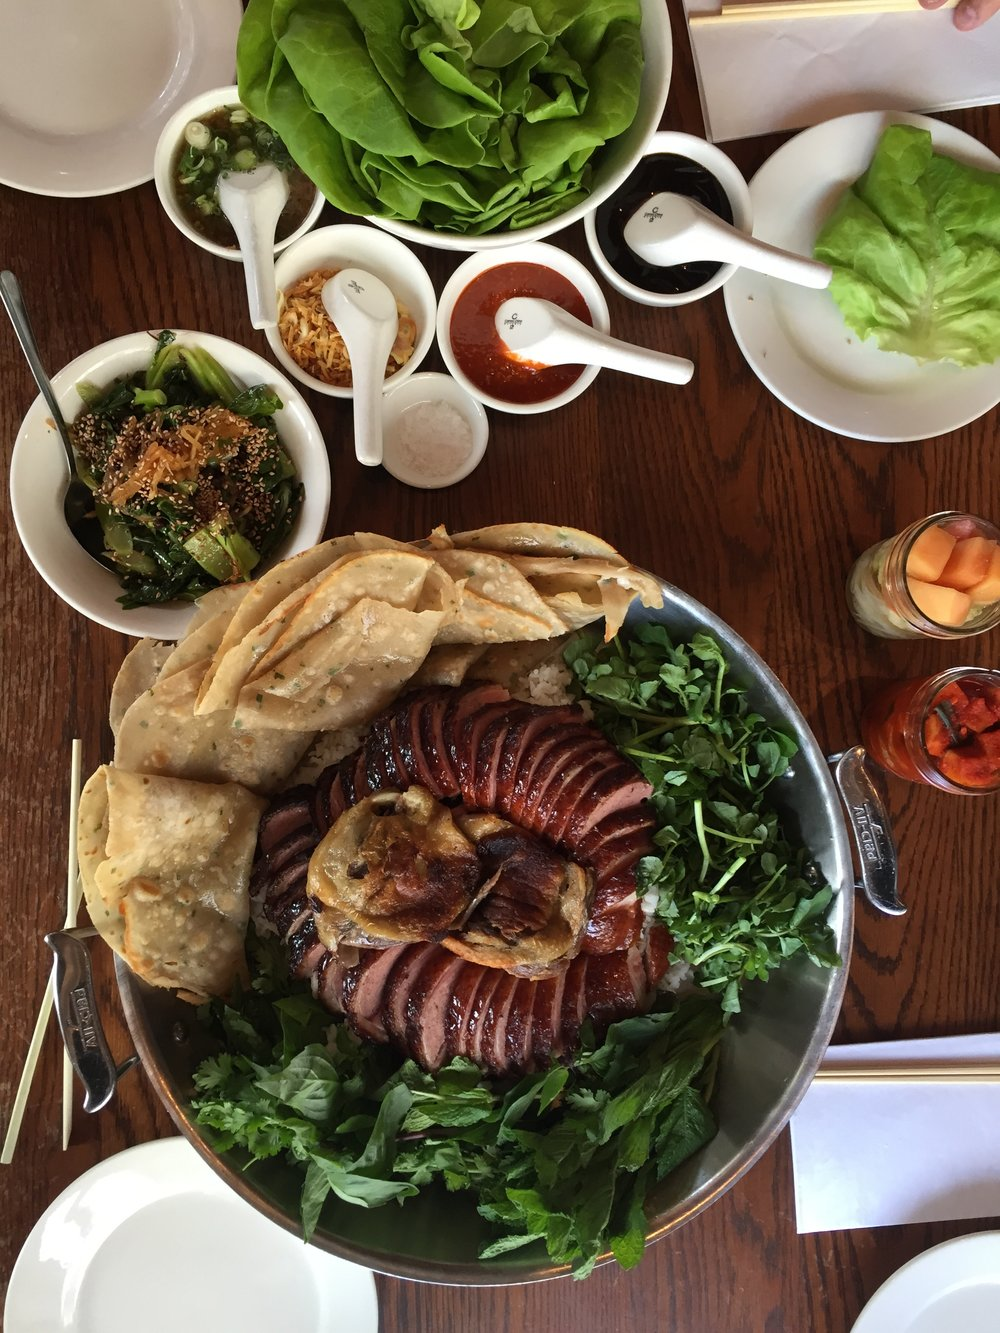 5. Momofuku Ssäm - New York, NYI've been wanting to get the duck at Ssäm for roughly 5 years, so in 2015 my dream came true! Shout out to Vishnu and Andrew for helping us devour this guy.